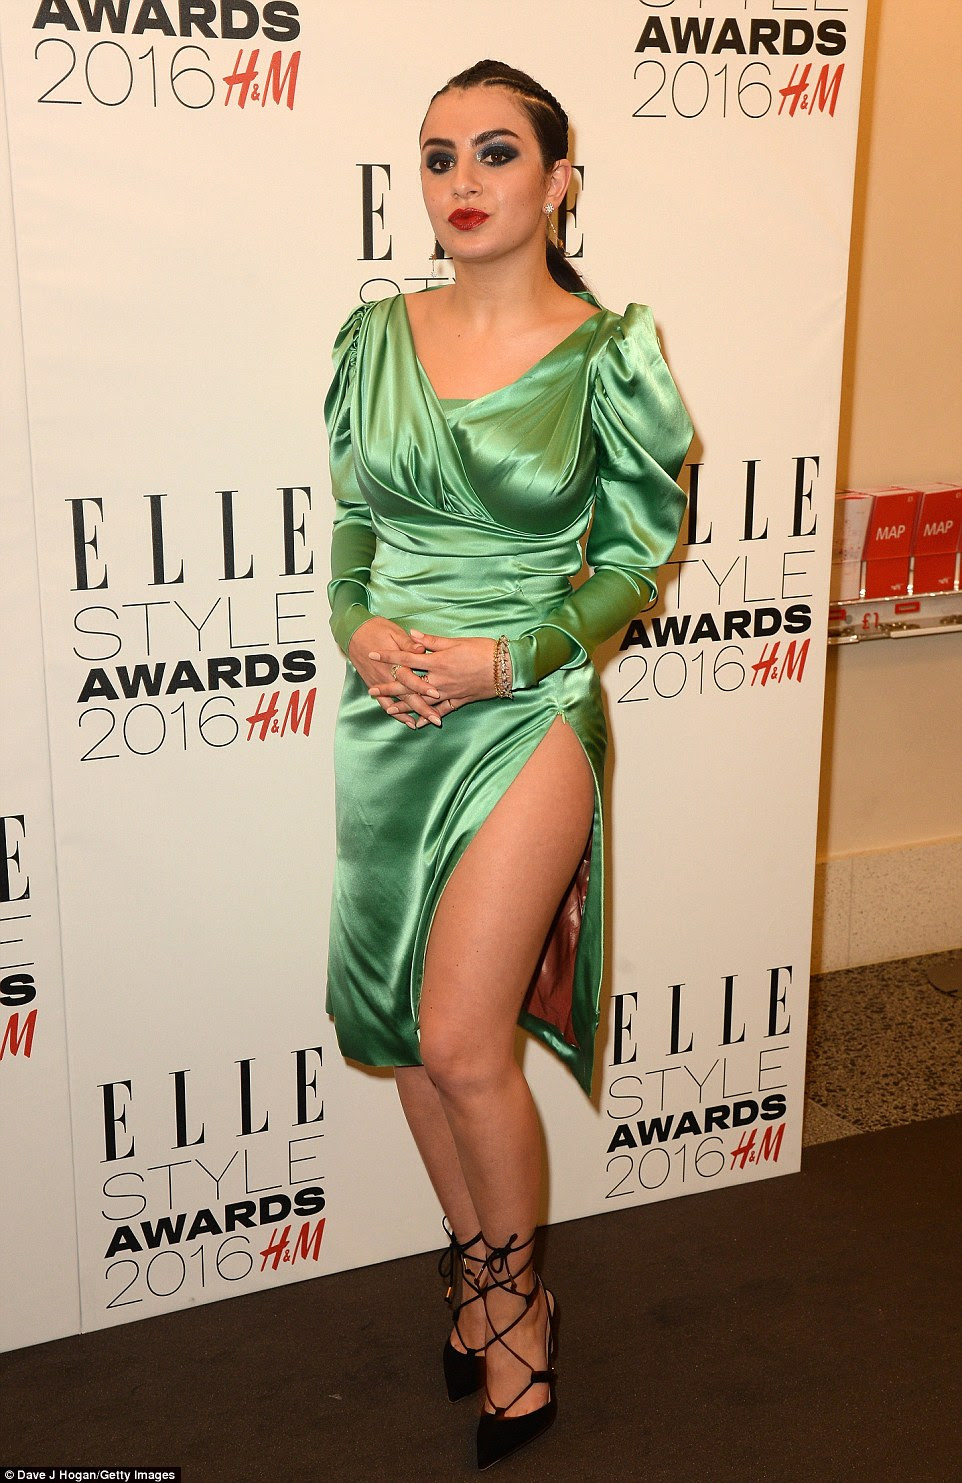 Unorthodox: Charli XCX, meanwhile, seemed to have got dressed in the dark when it came to her retro green dress